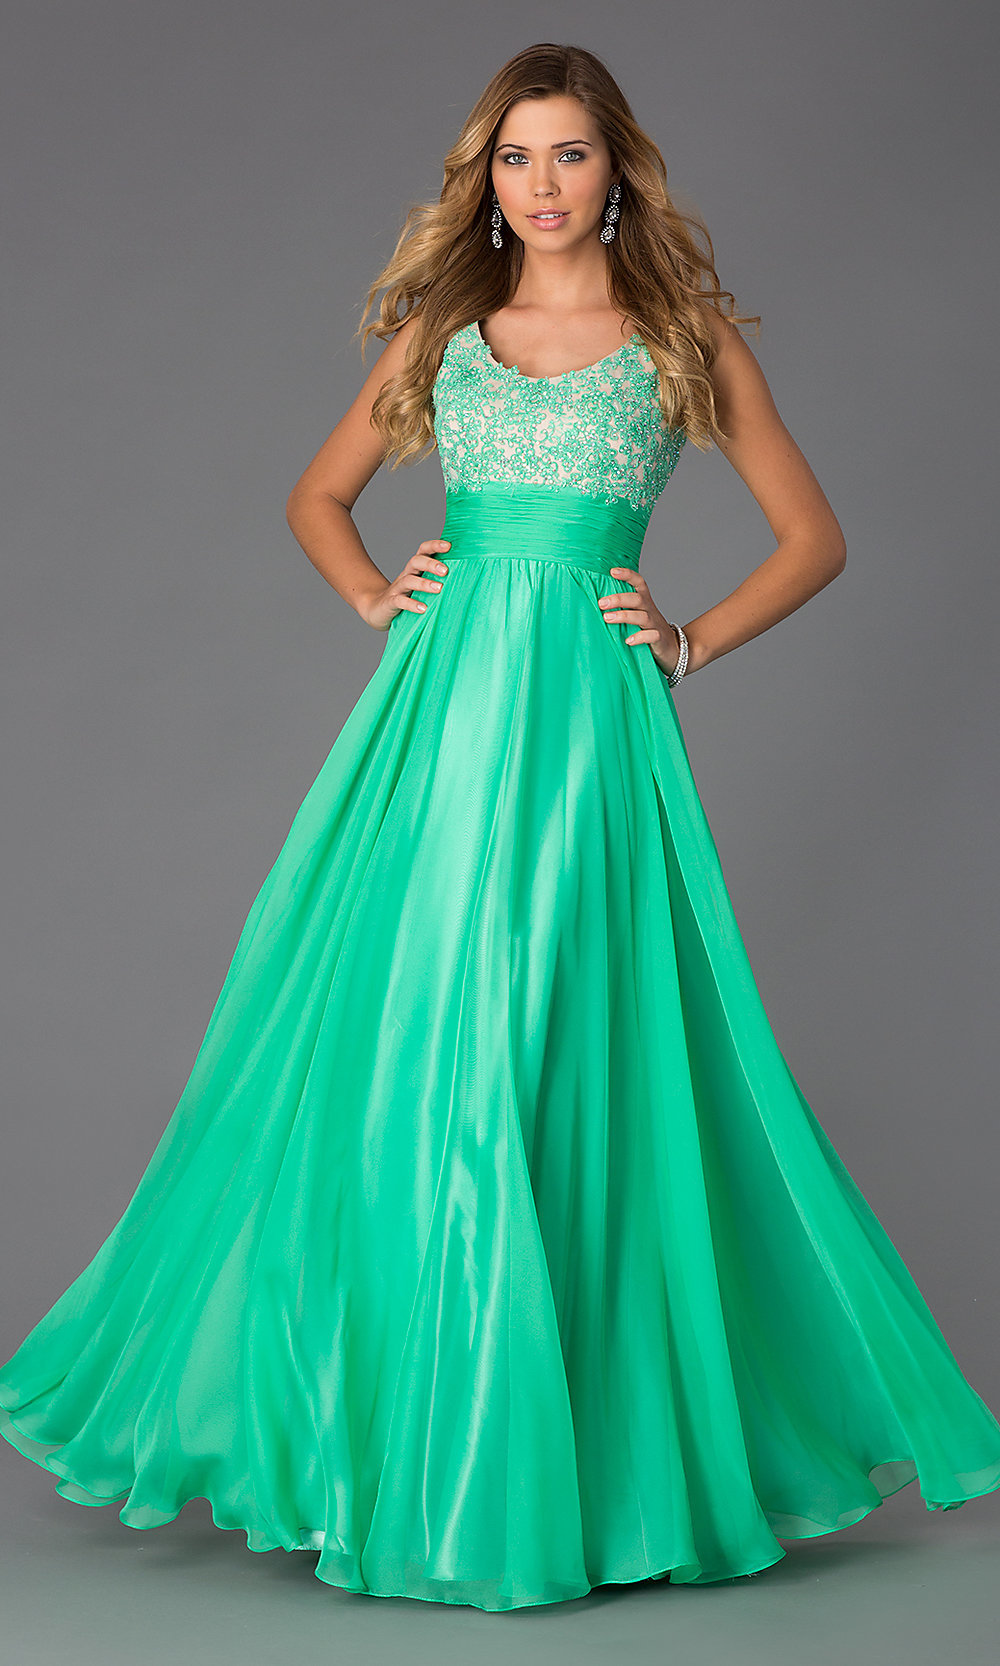 Homecoming Dresses, Formal Prom Dresses, Evening Wear ...